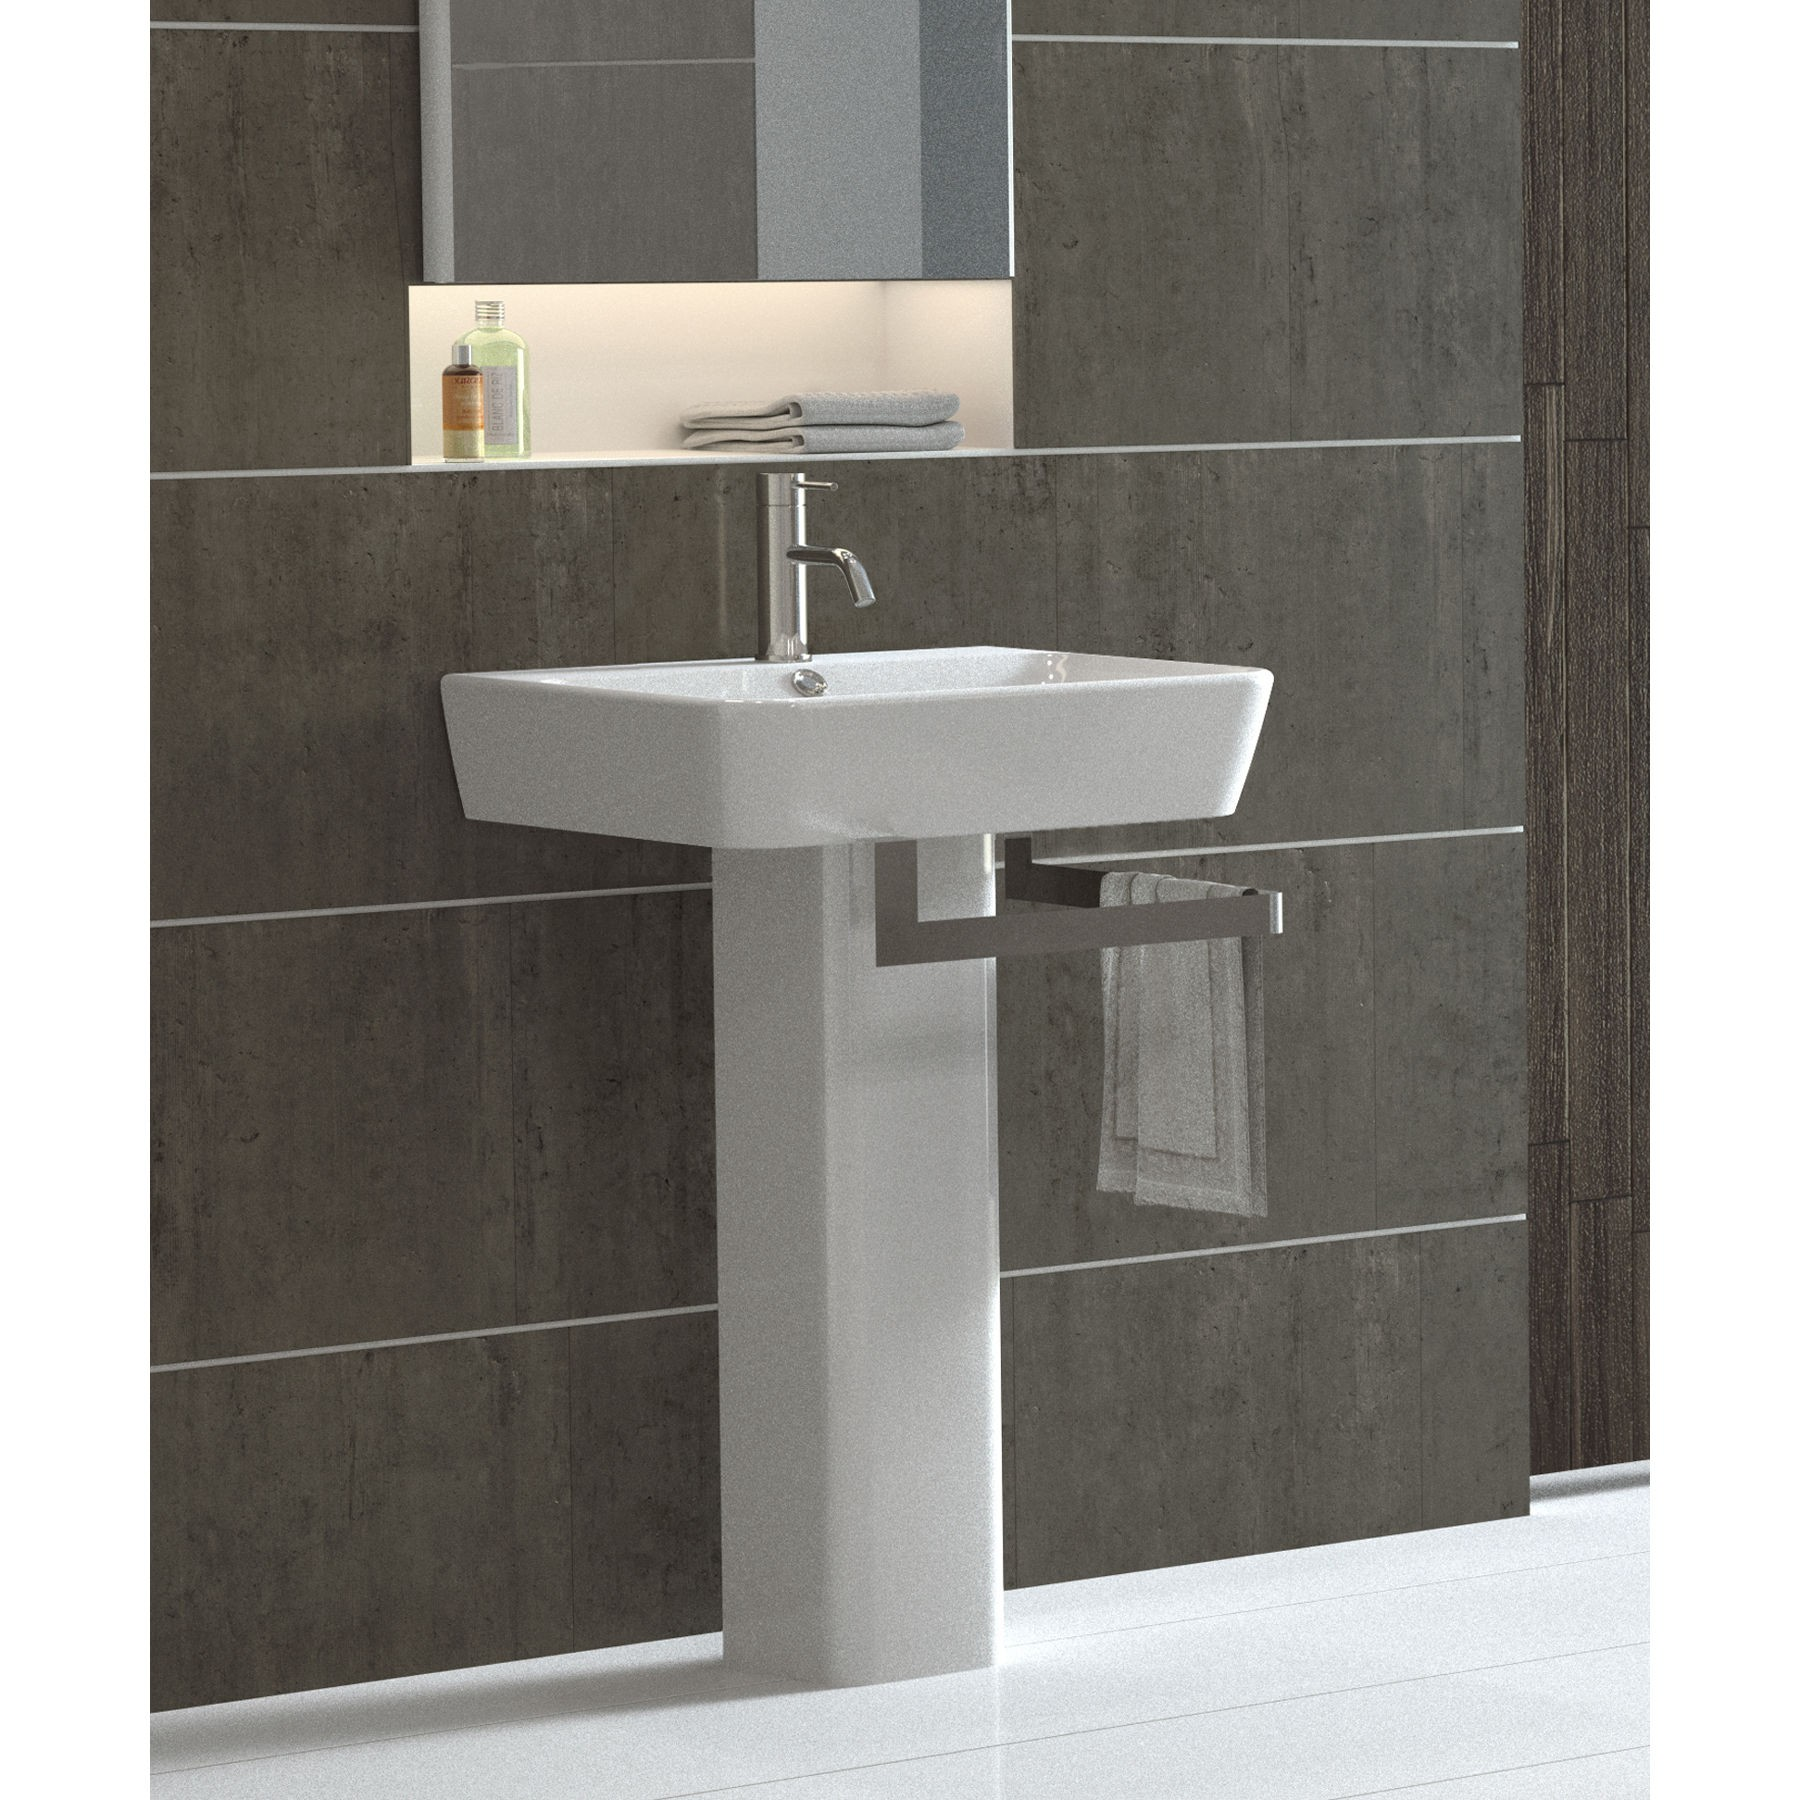 Modern Pedestal Sink With Towel Bar Homesfeed